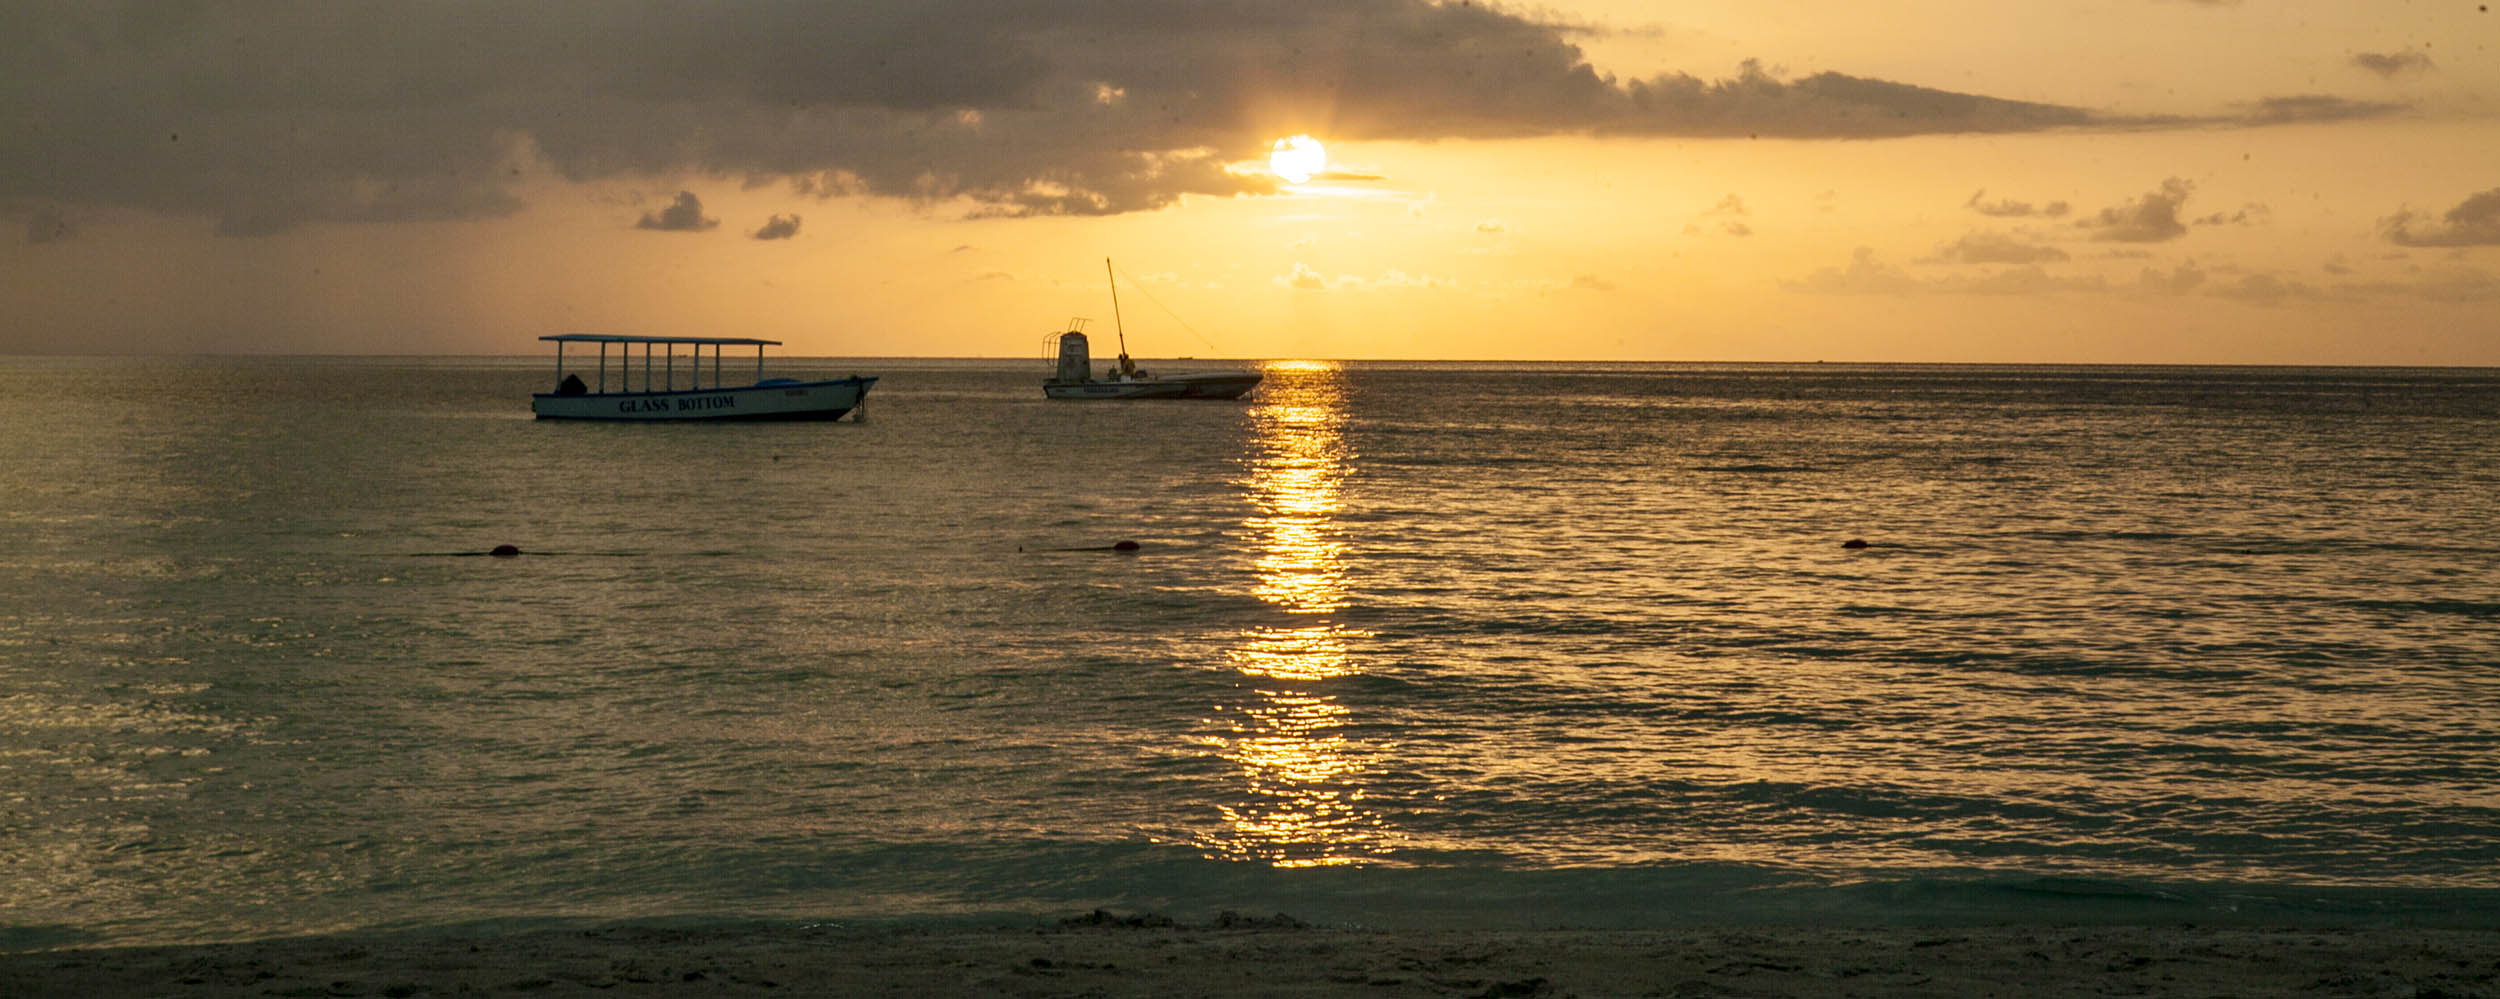 Caribbean Sunset @ Negril Beach, Negril Jamaica